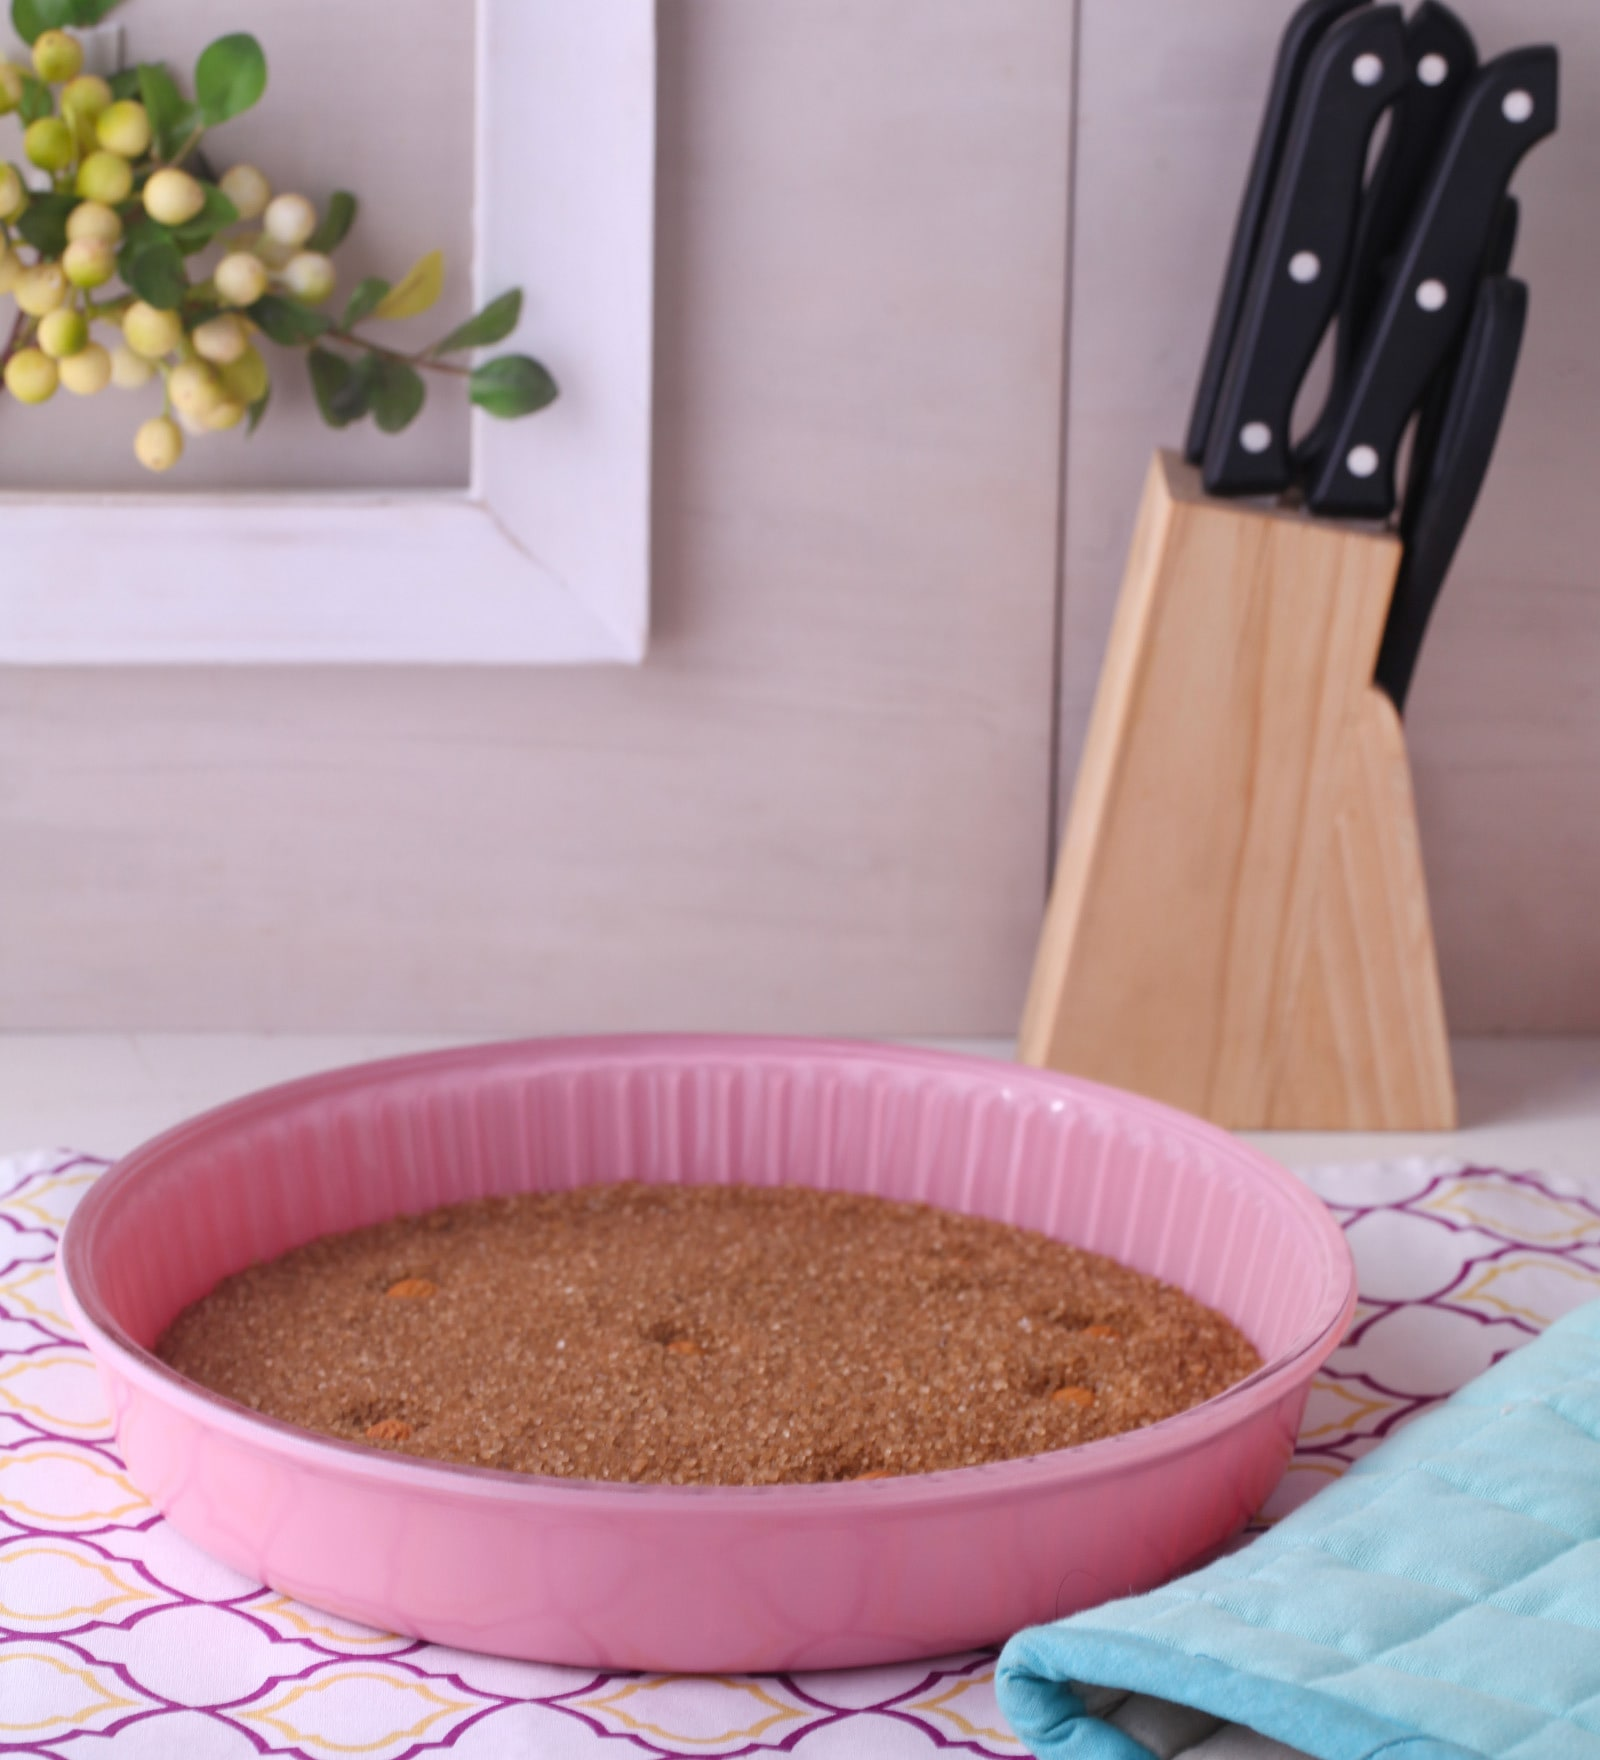 Pasabahce Ovenware Pink Glass Round Tray